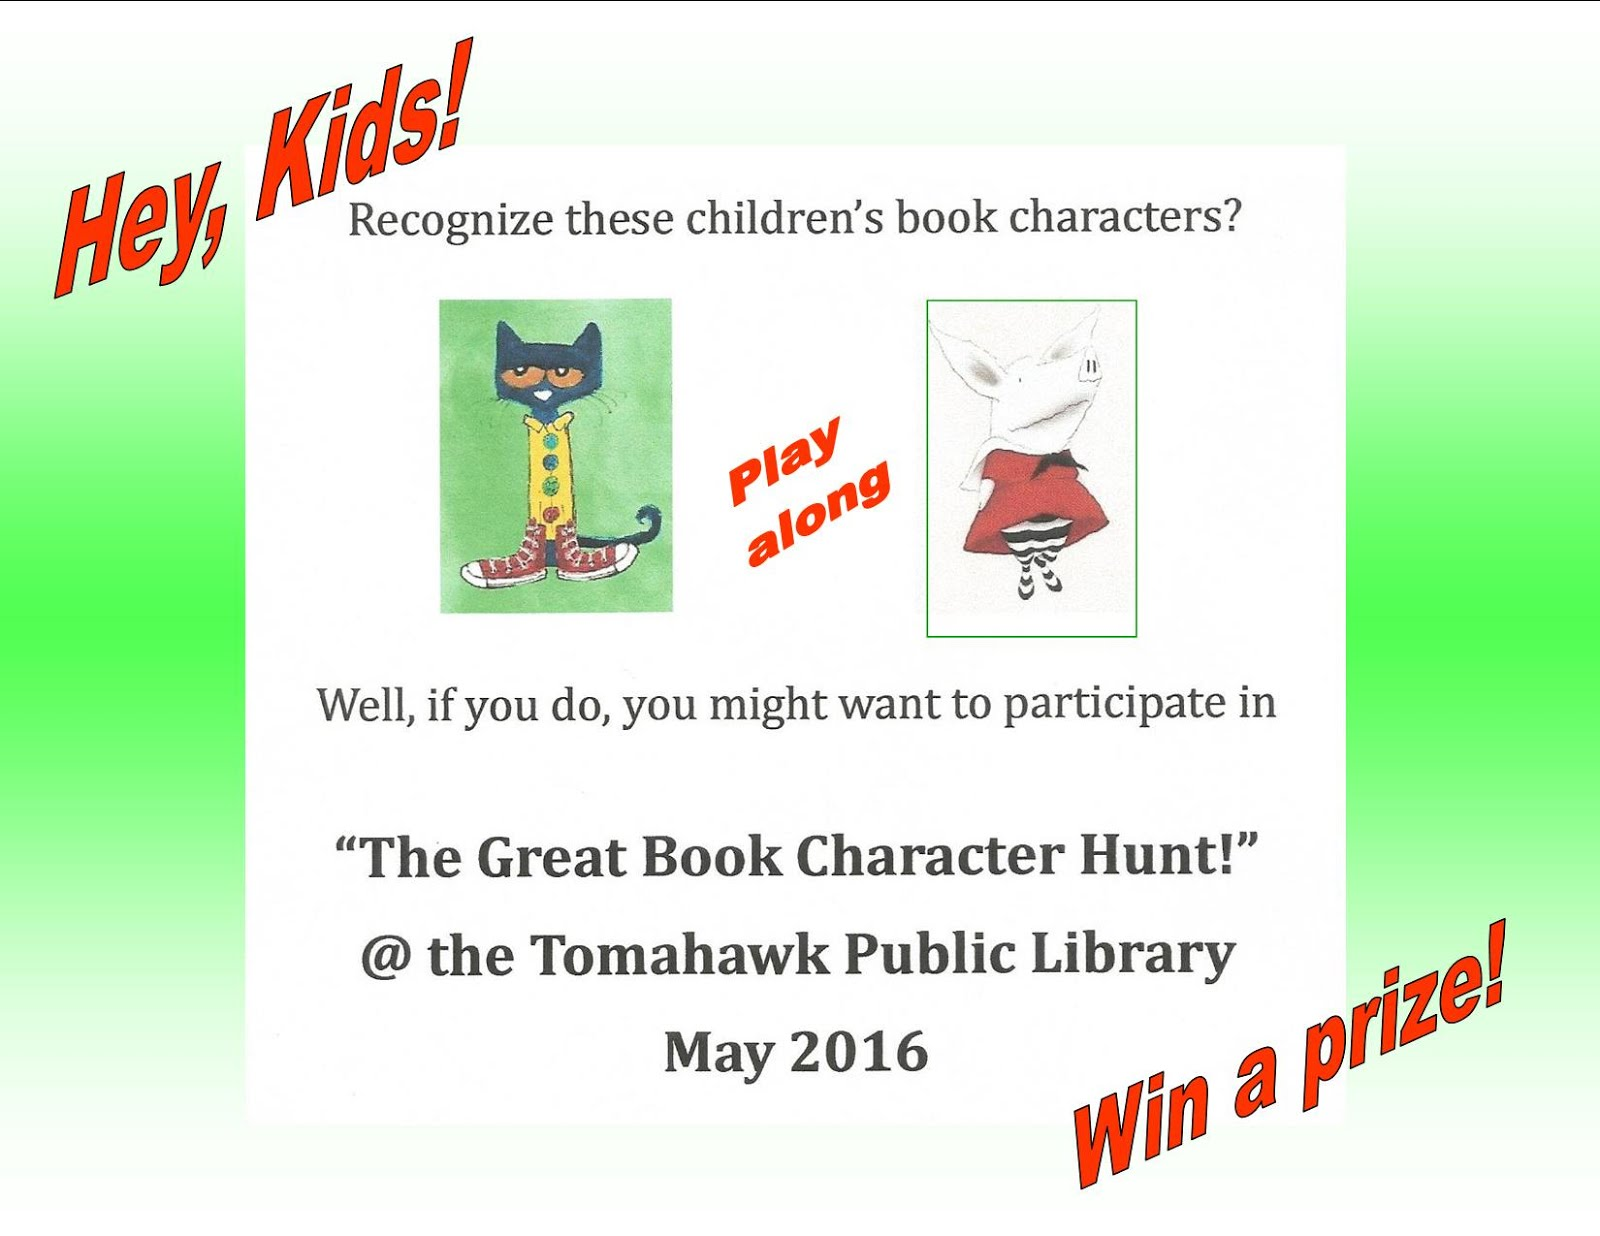 CHILDREN's BOOK WEEK is going to be a MONTH-LONG!!!